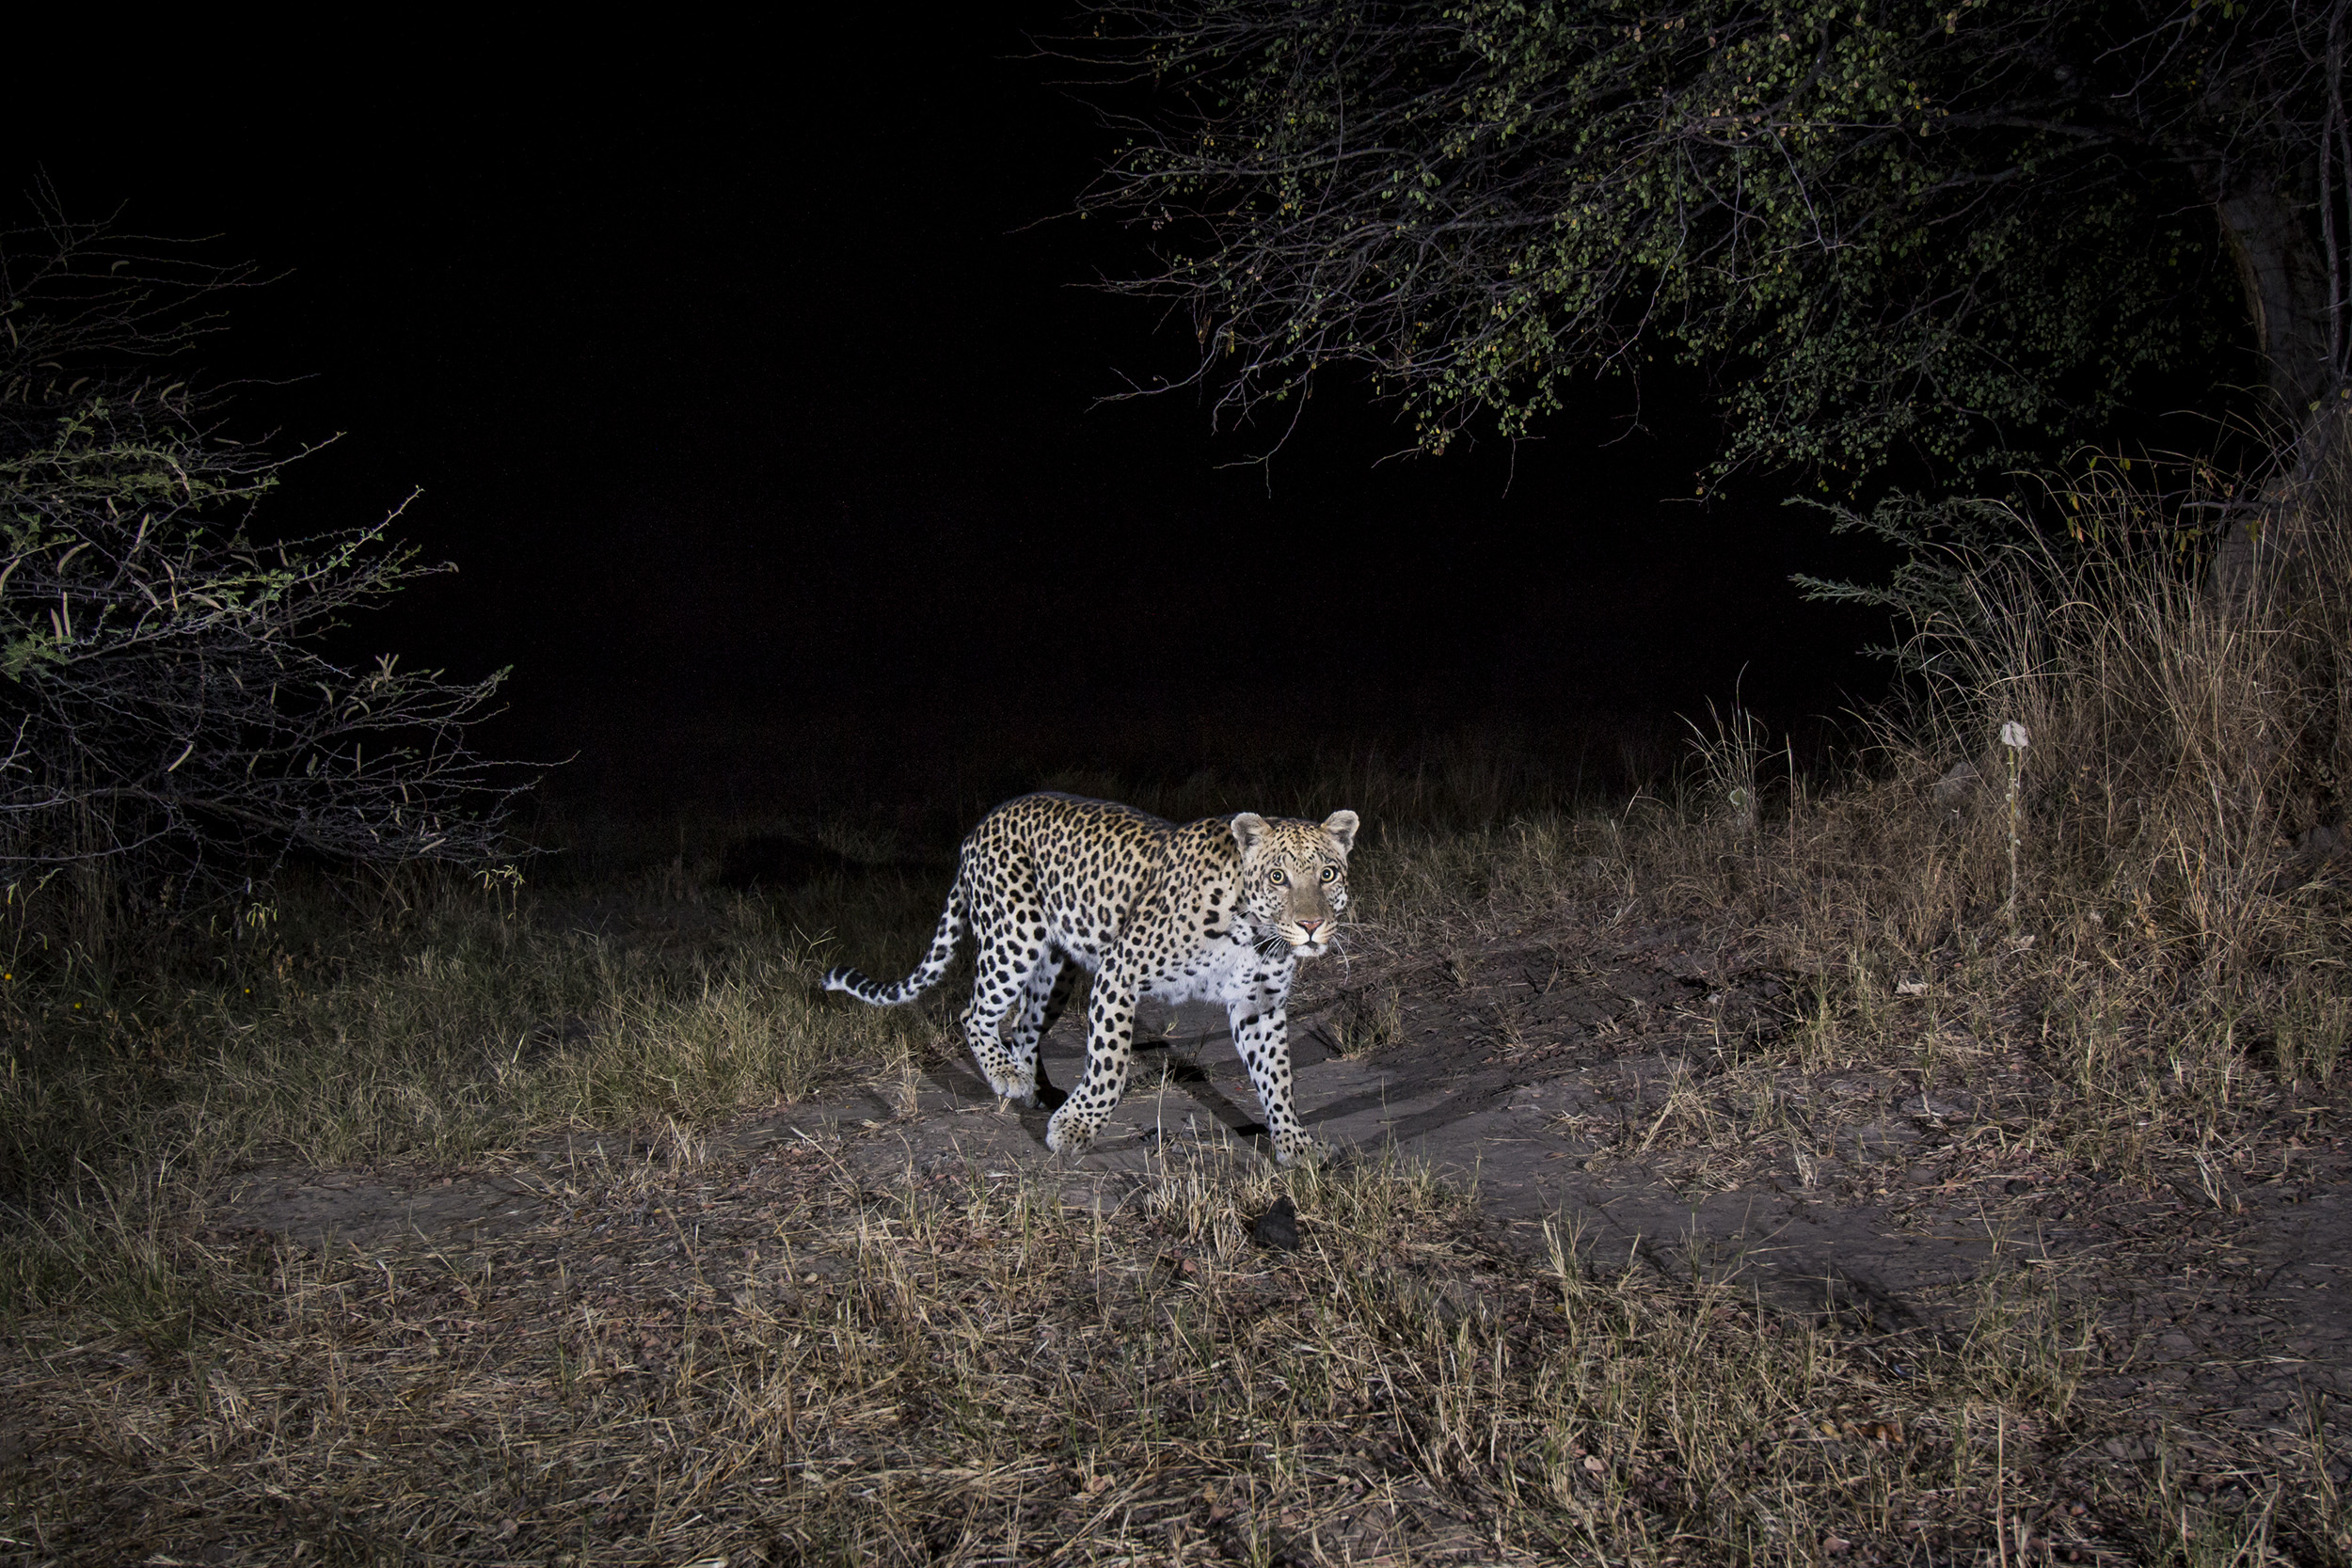 A camera trap image of a leopard using Camtraptions PIR motion sensor.